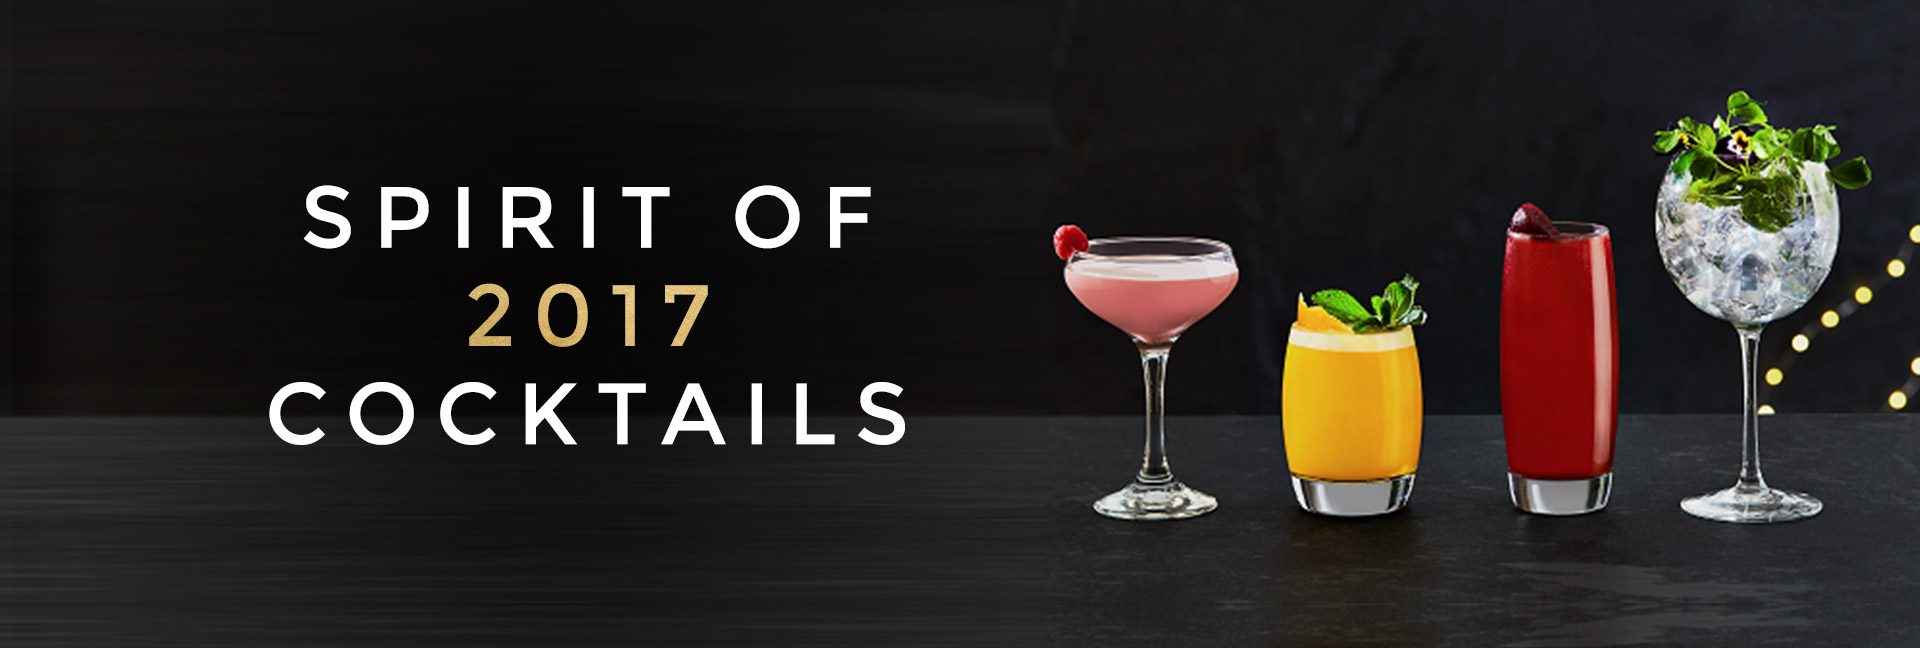 Spirit of 2017 cocktails at All Bar One New Street Station